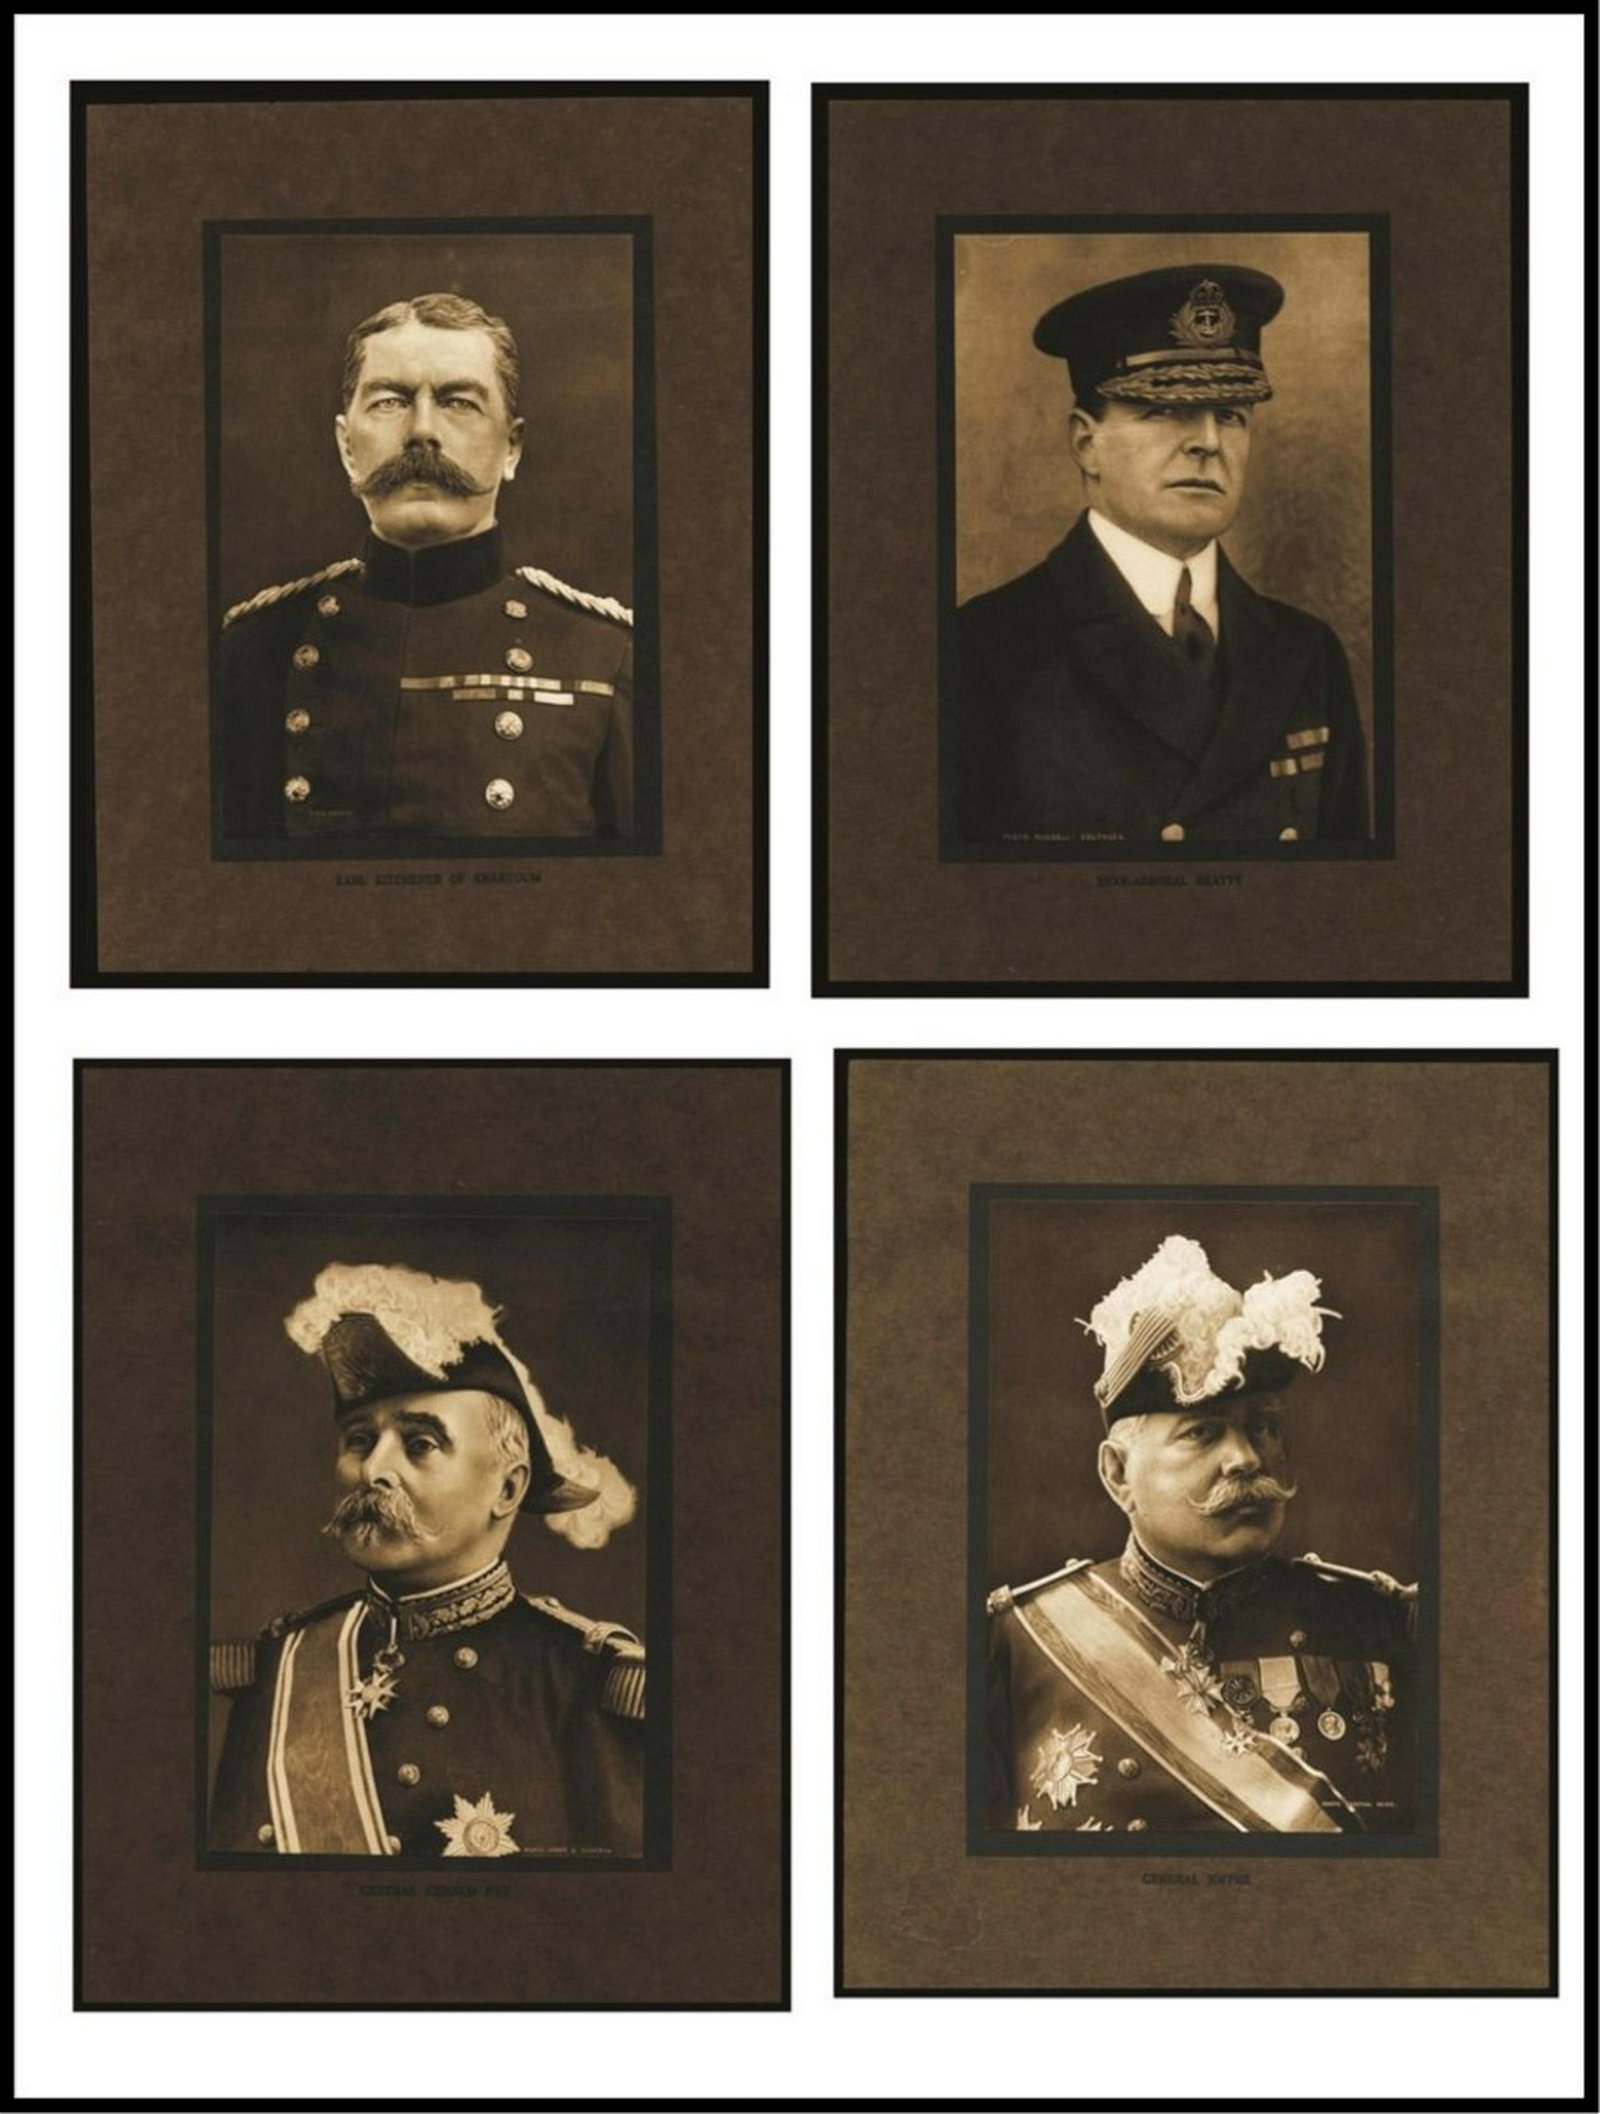 WW1-HERO'S/LEADERS of WW1 PHOTOGRAVURES